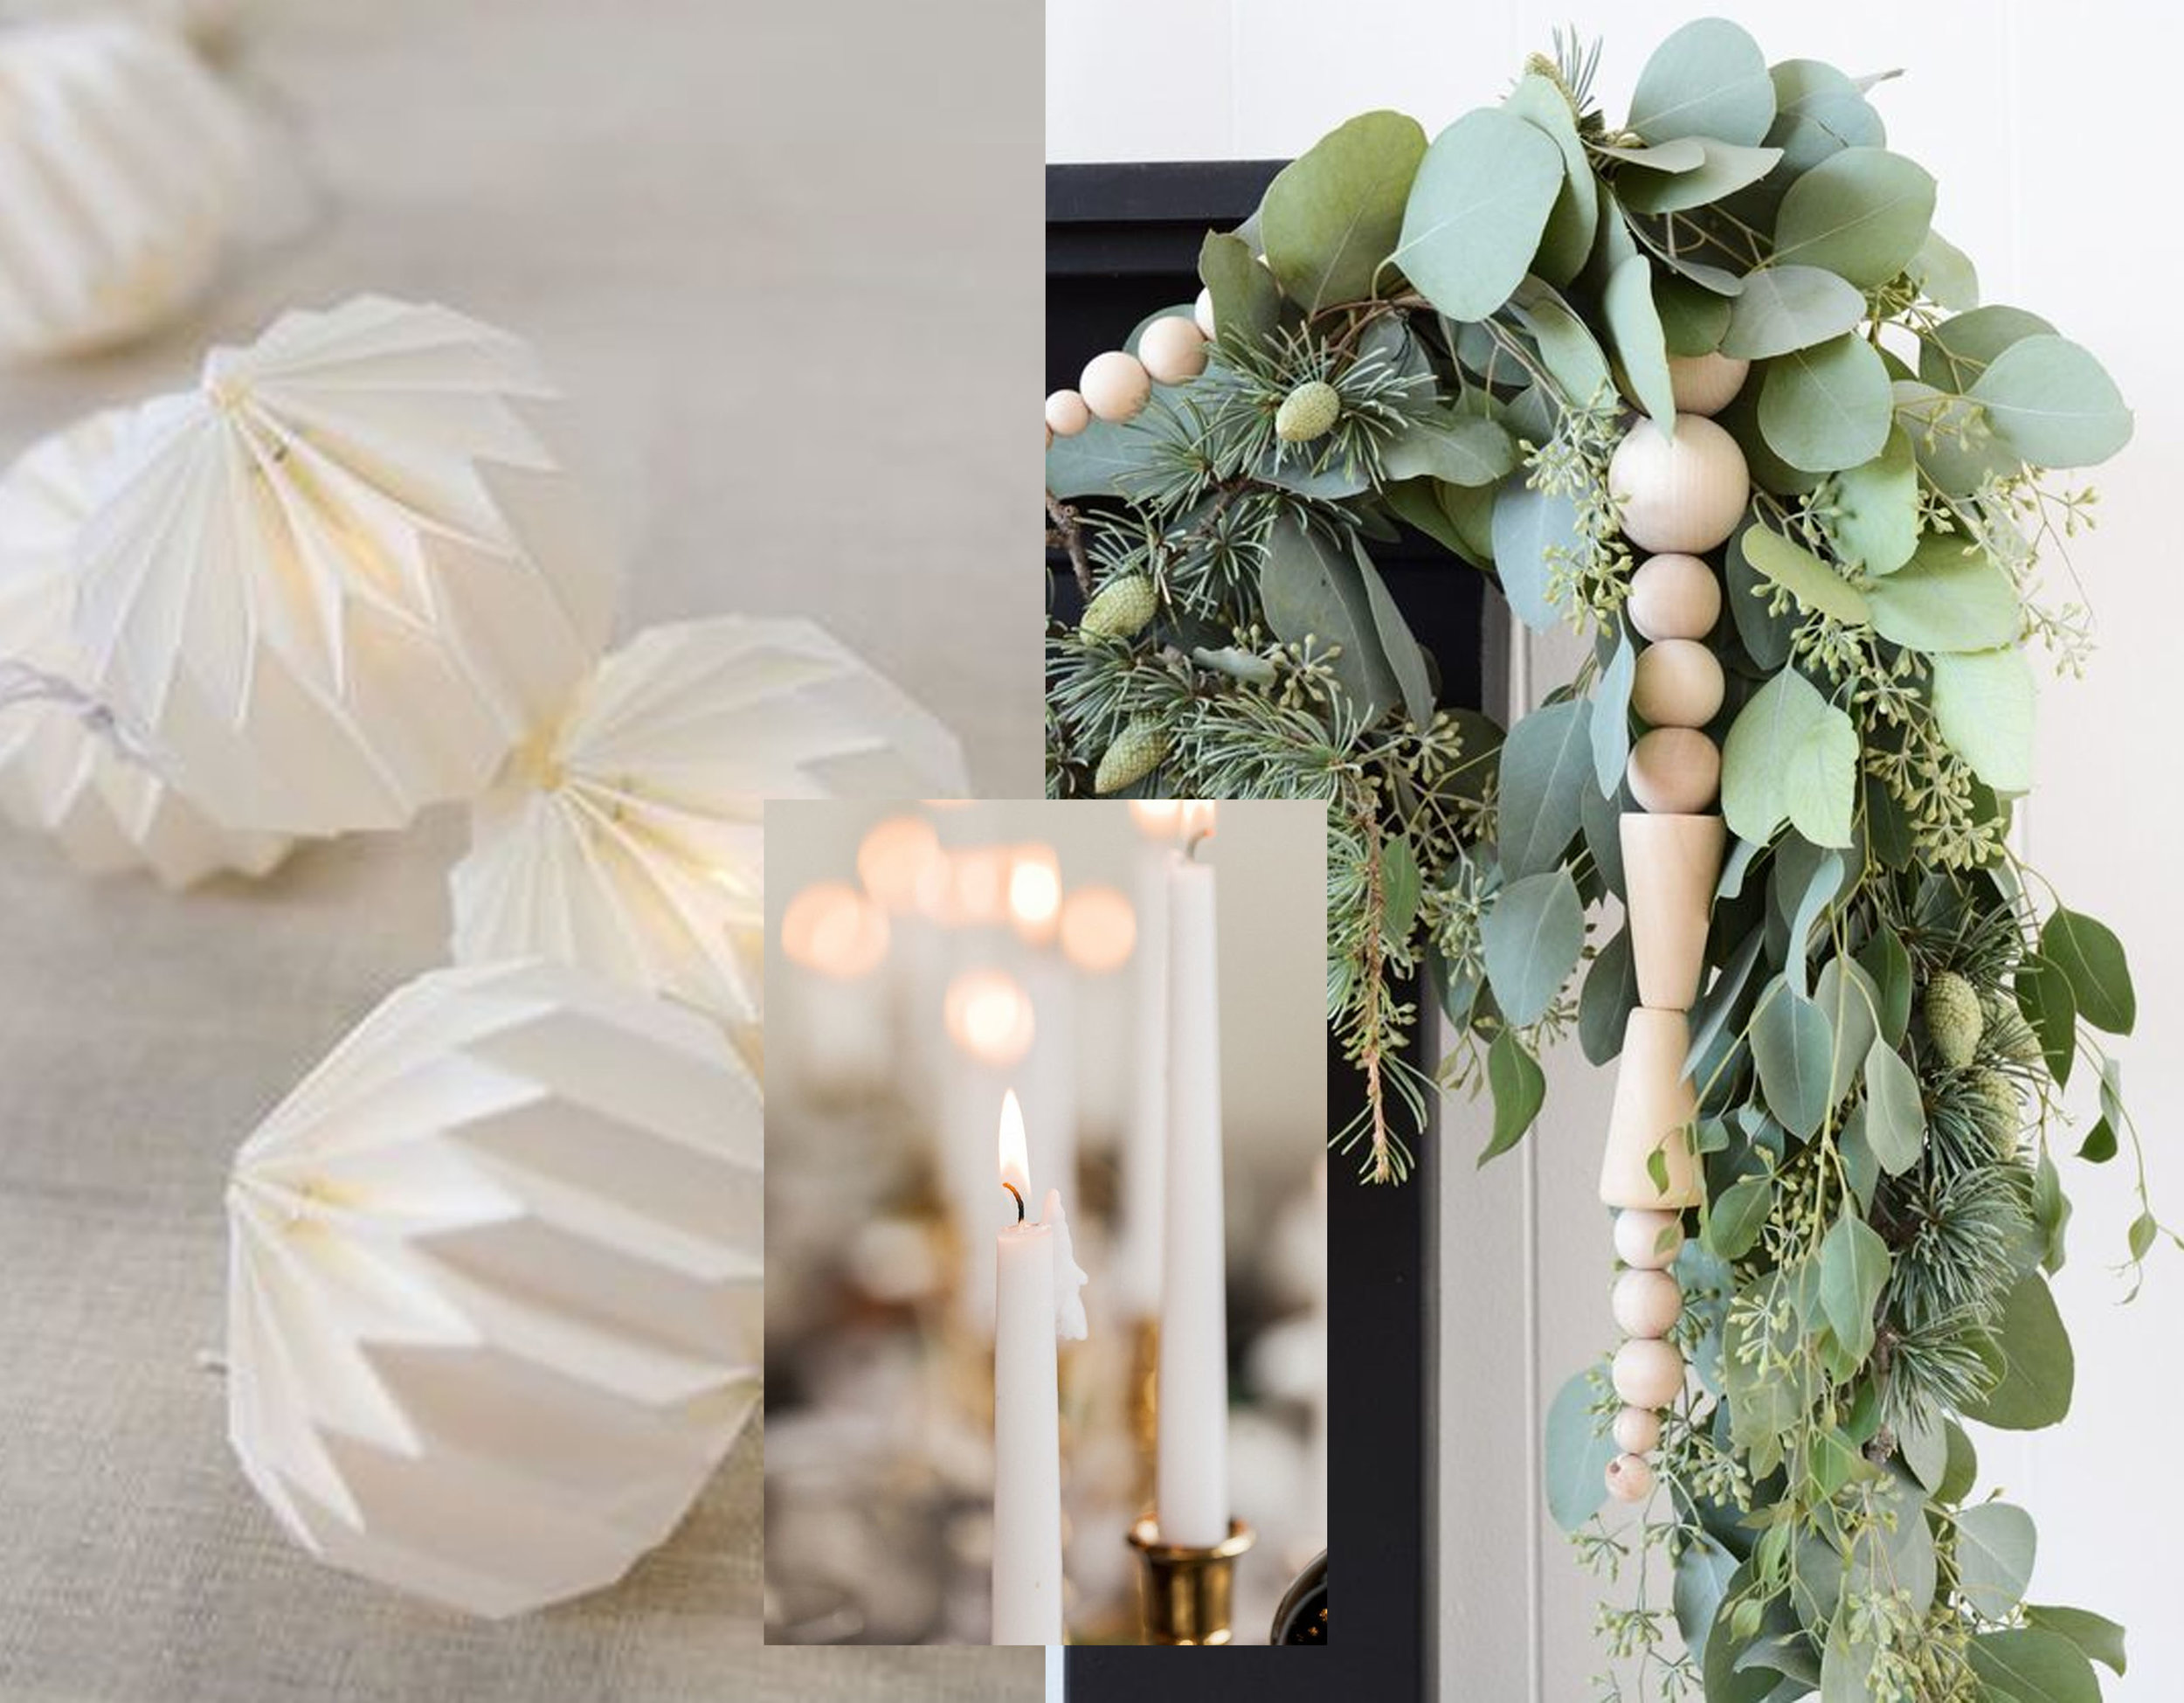 Seya Ball Garland  Nkuku  - modern garland via  Oleander + Palm  - candles via  Sara Lynn Journal